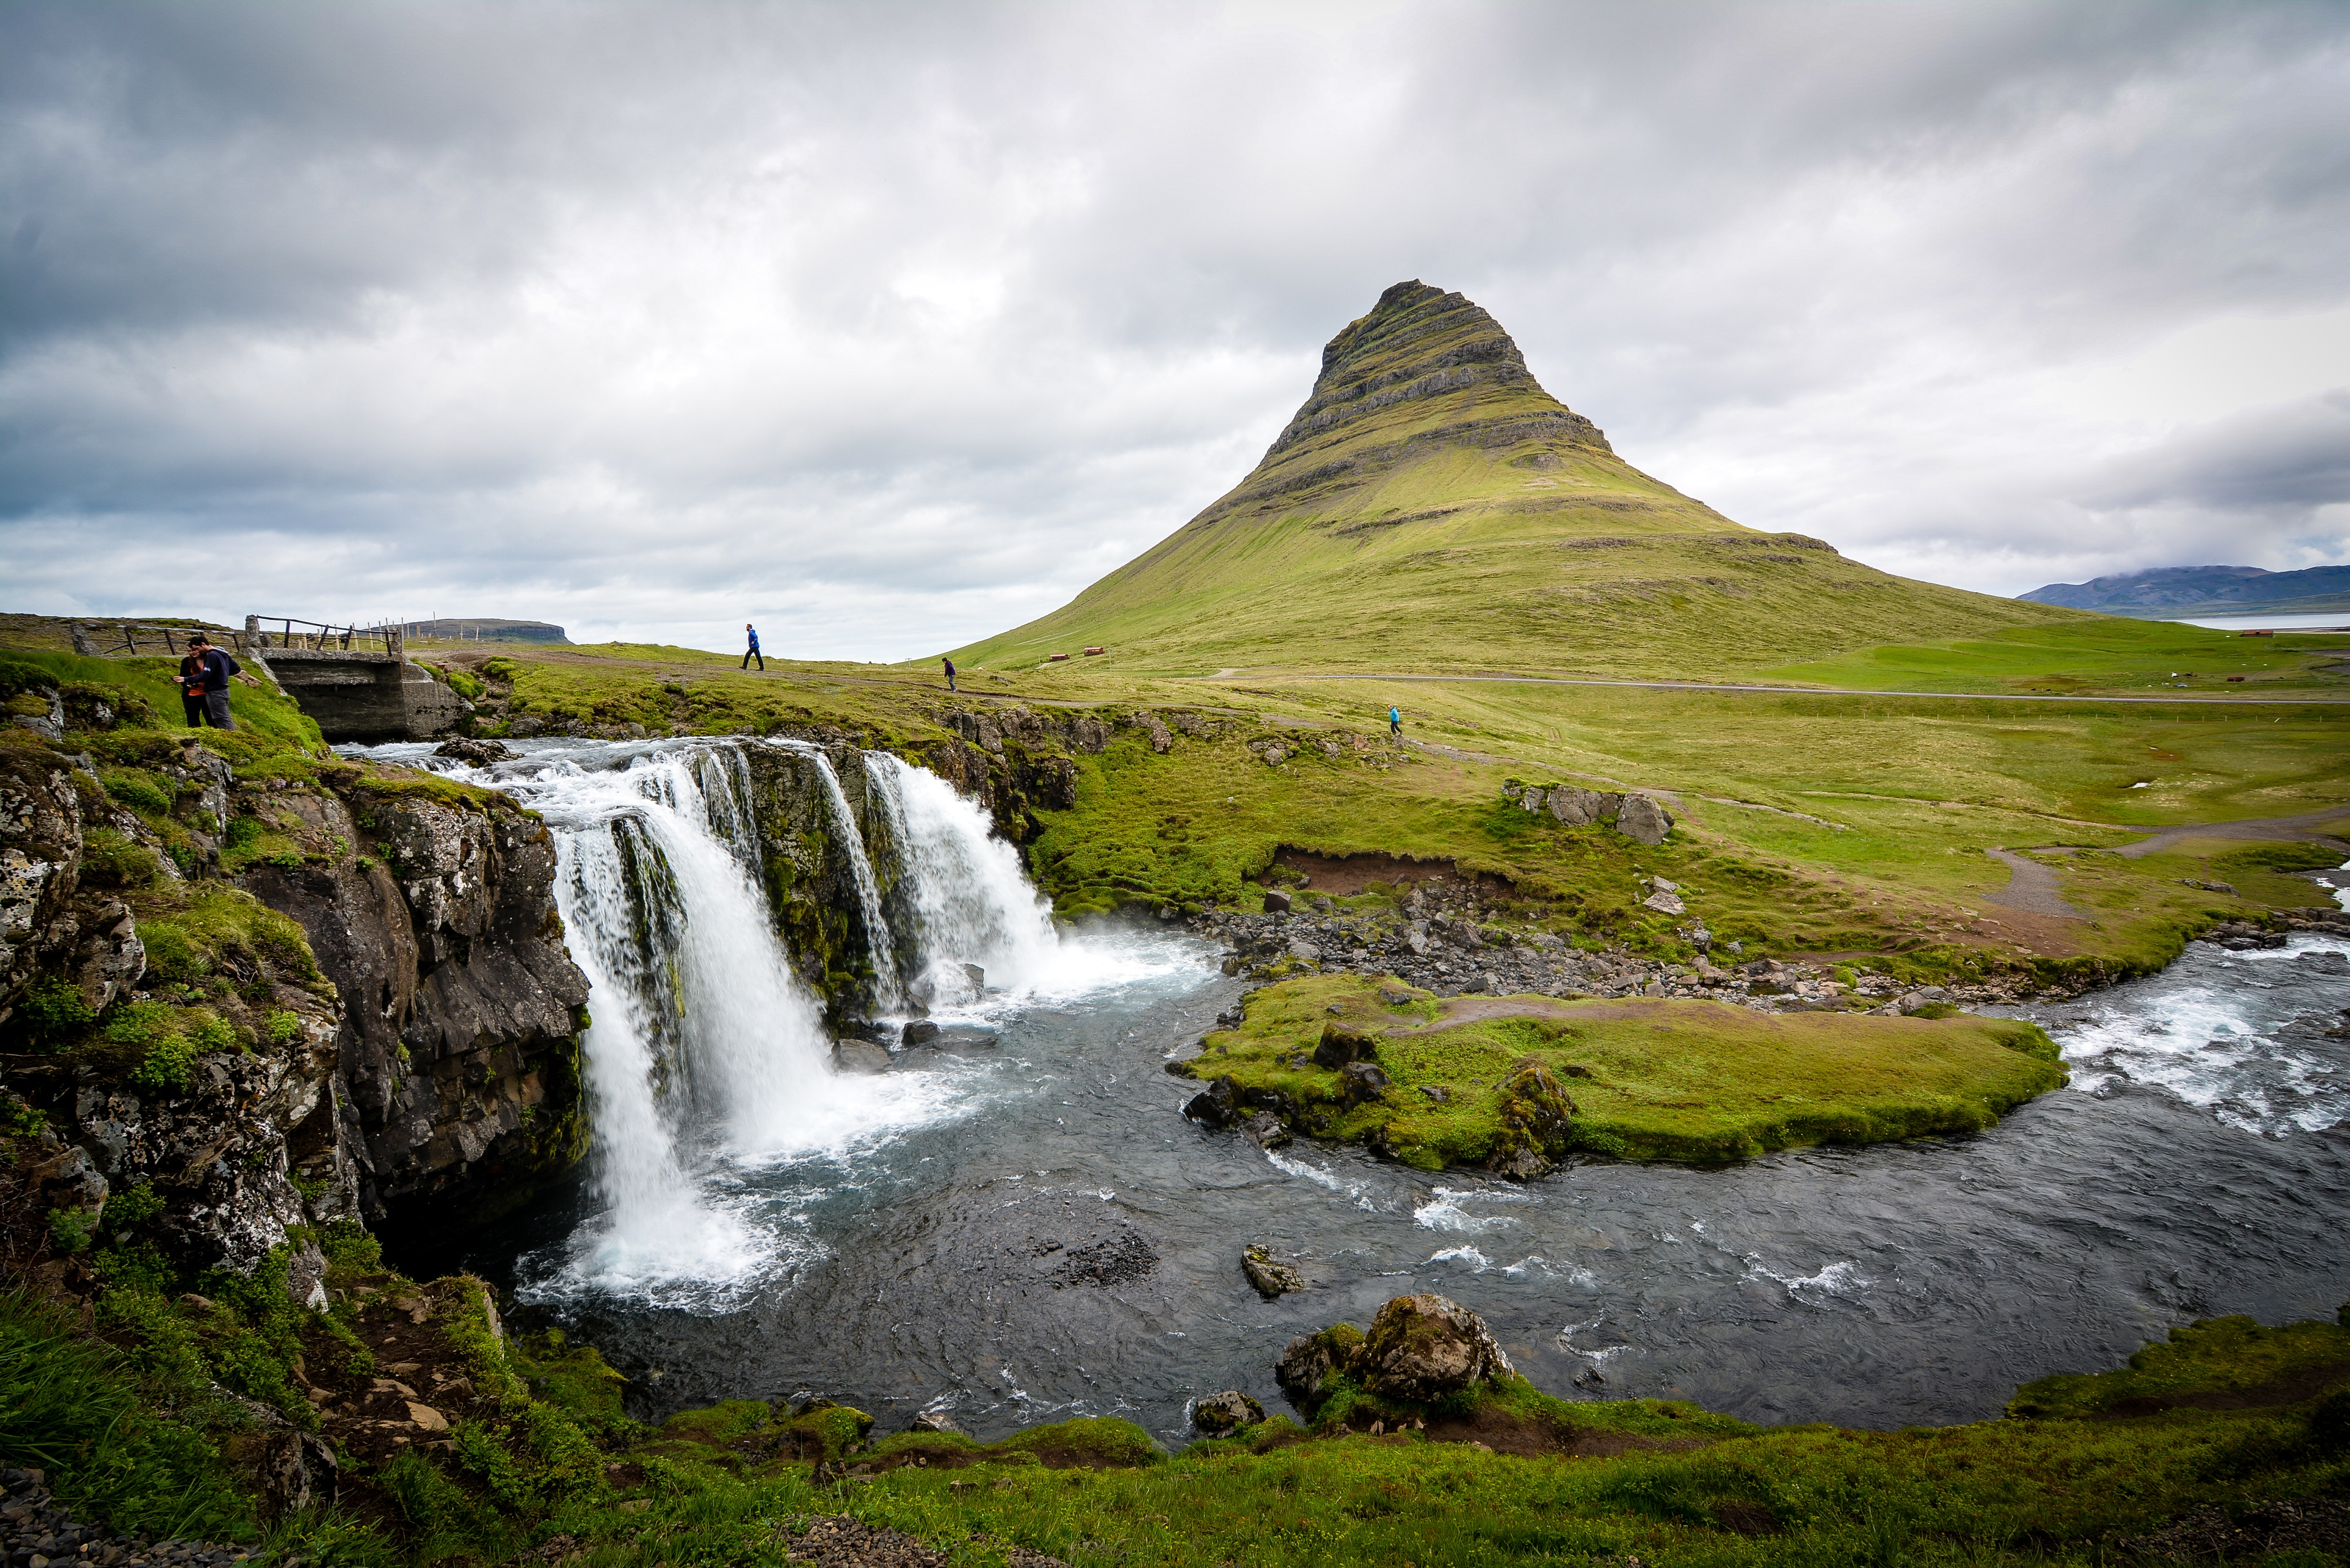 The Grand Circle Tour of Iceland and the Snæfellsnes Peninsula